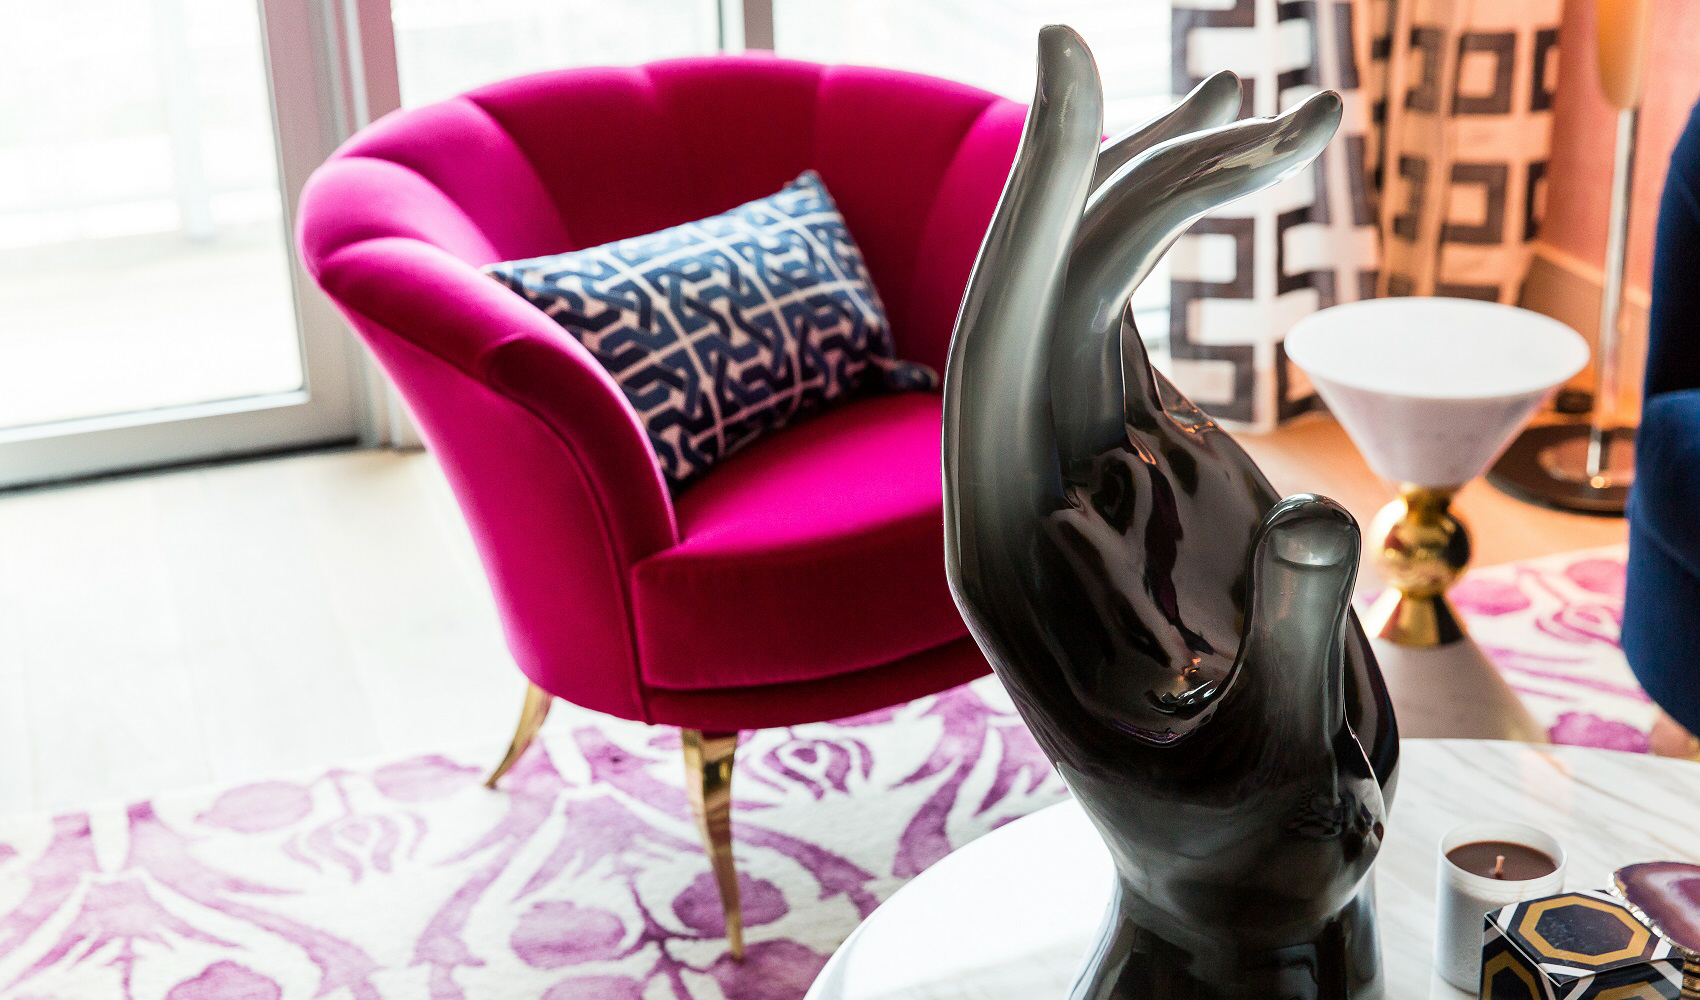 Top Interior Designers in Texas - Maureen Stevens Designs - Seaholm Condo Design - KOKET Besame II Chair - Curved back chair - Decorative accent chair - chair with gold legs top interior designers Top Interior Designers: Maureen Stevens Design MSDesigns Seaholm 0020 1